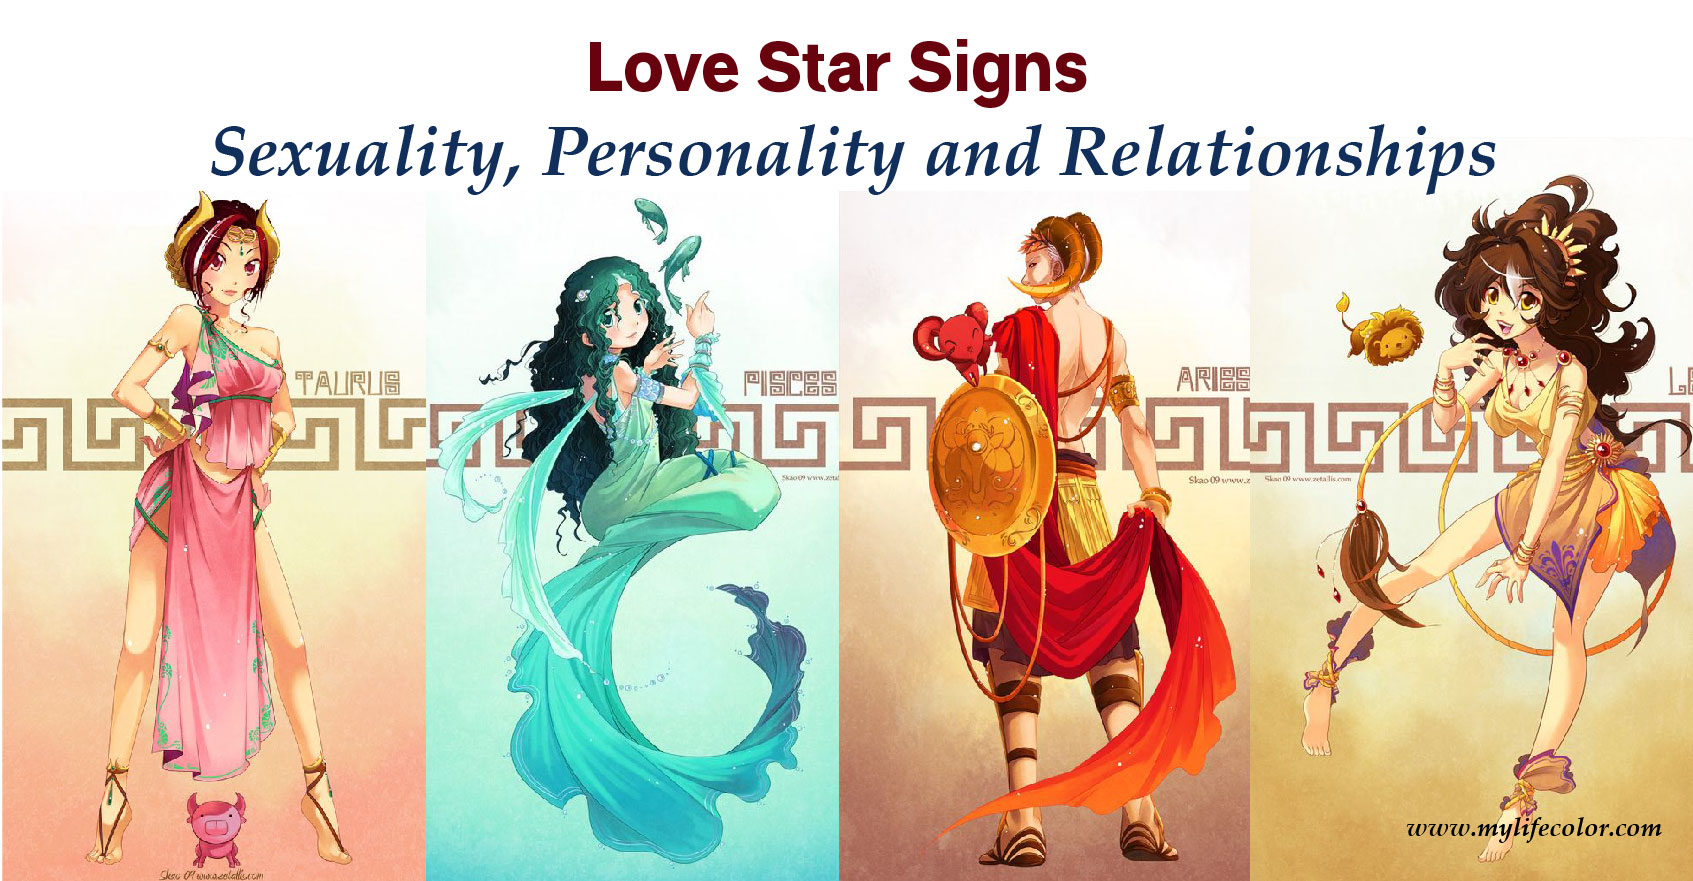 Earth signs sexuality